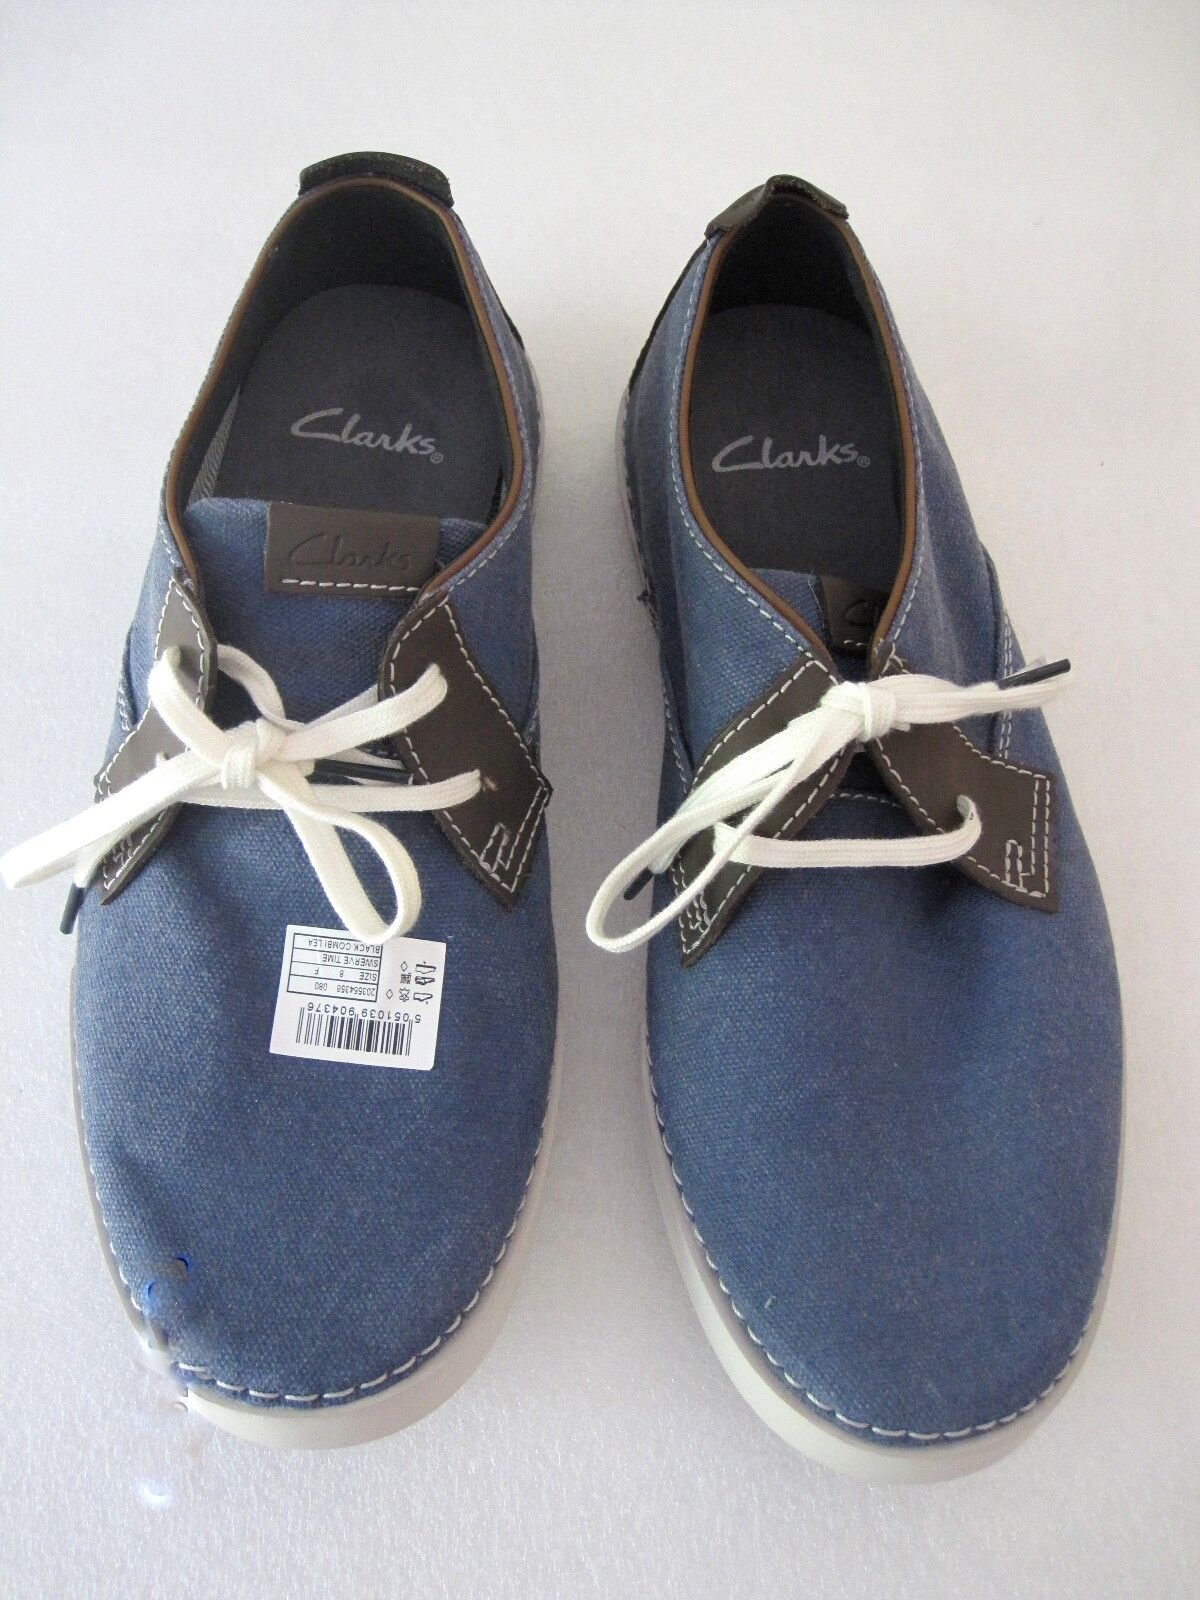 BN MEN'S Sz 8.5 CLARKS NEELIX VIBE BLUE CANVAS and LEATHER OXFORD SHOES WINTER SUN